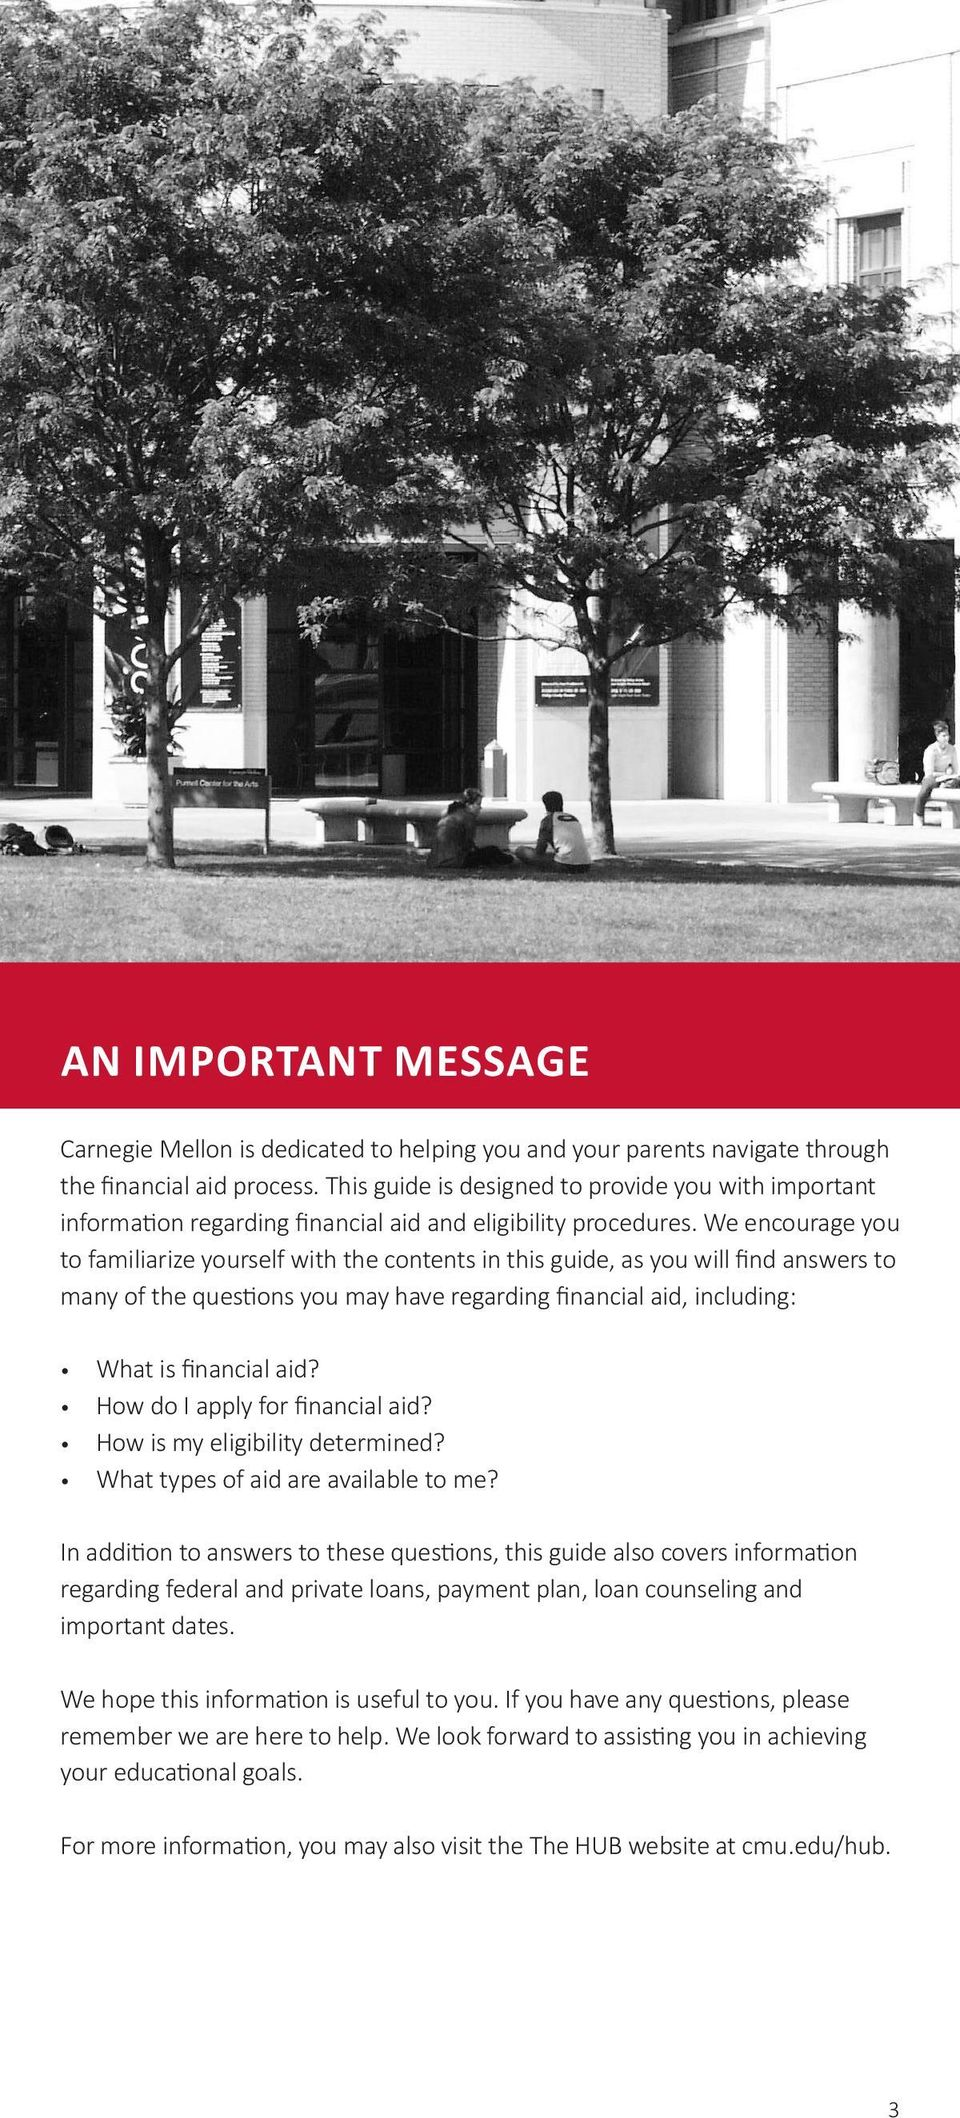 We encourage you to familiarize yourself with the contents in this guide, as you will find answers to many of the questions you may have regarding financial aid, including: What is financial aid?